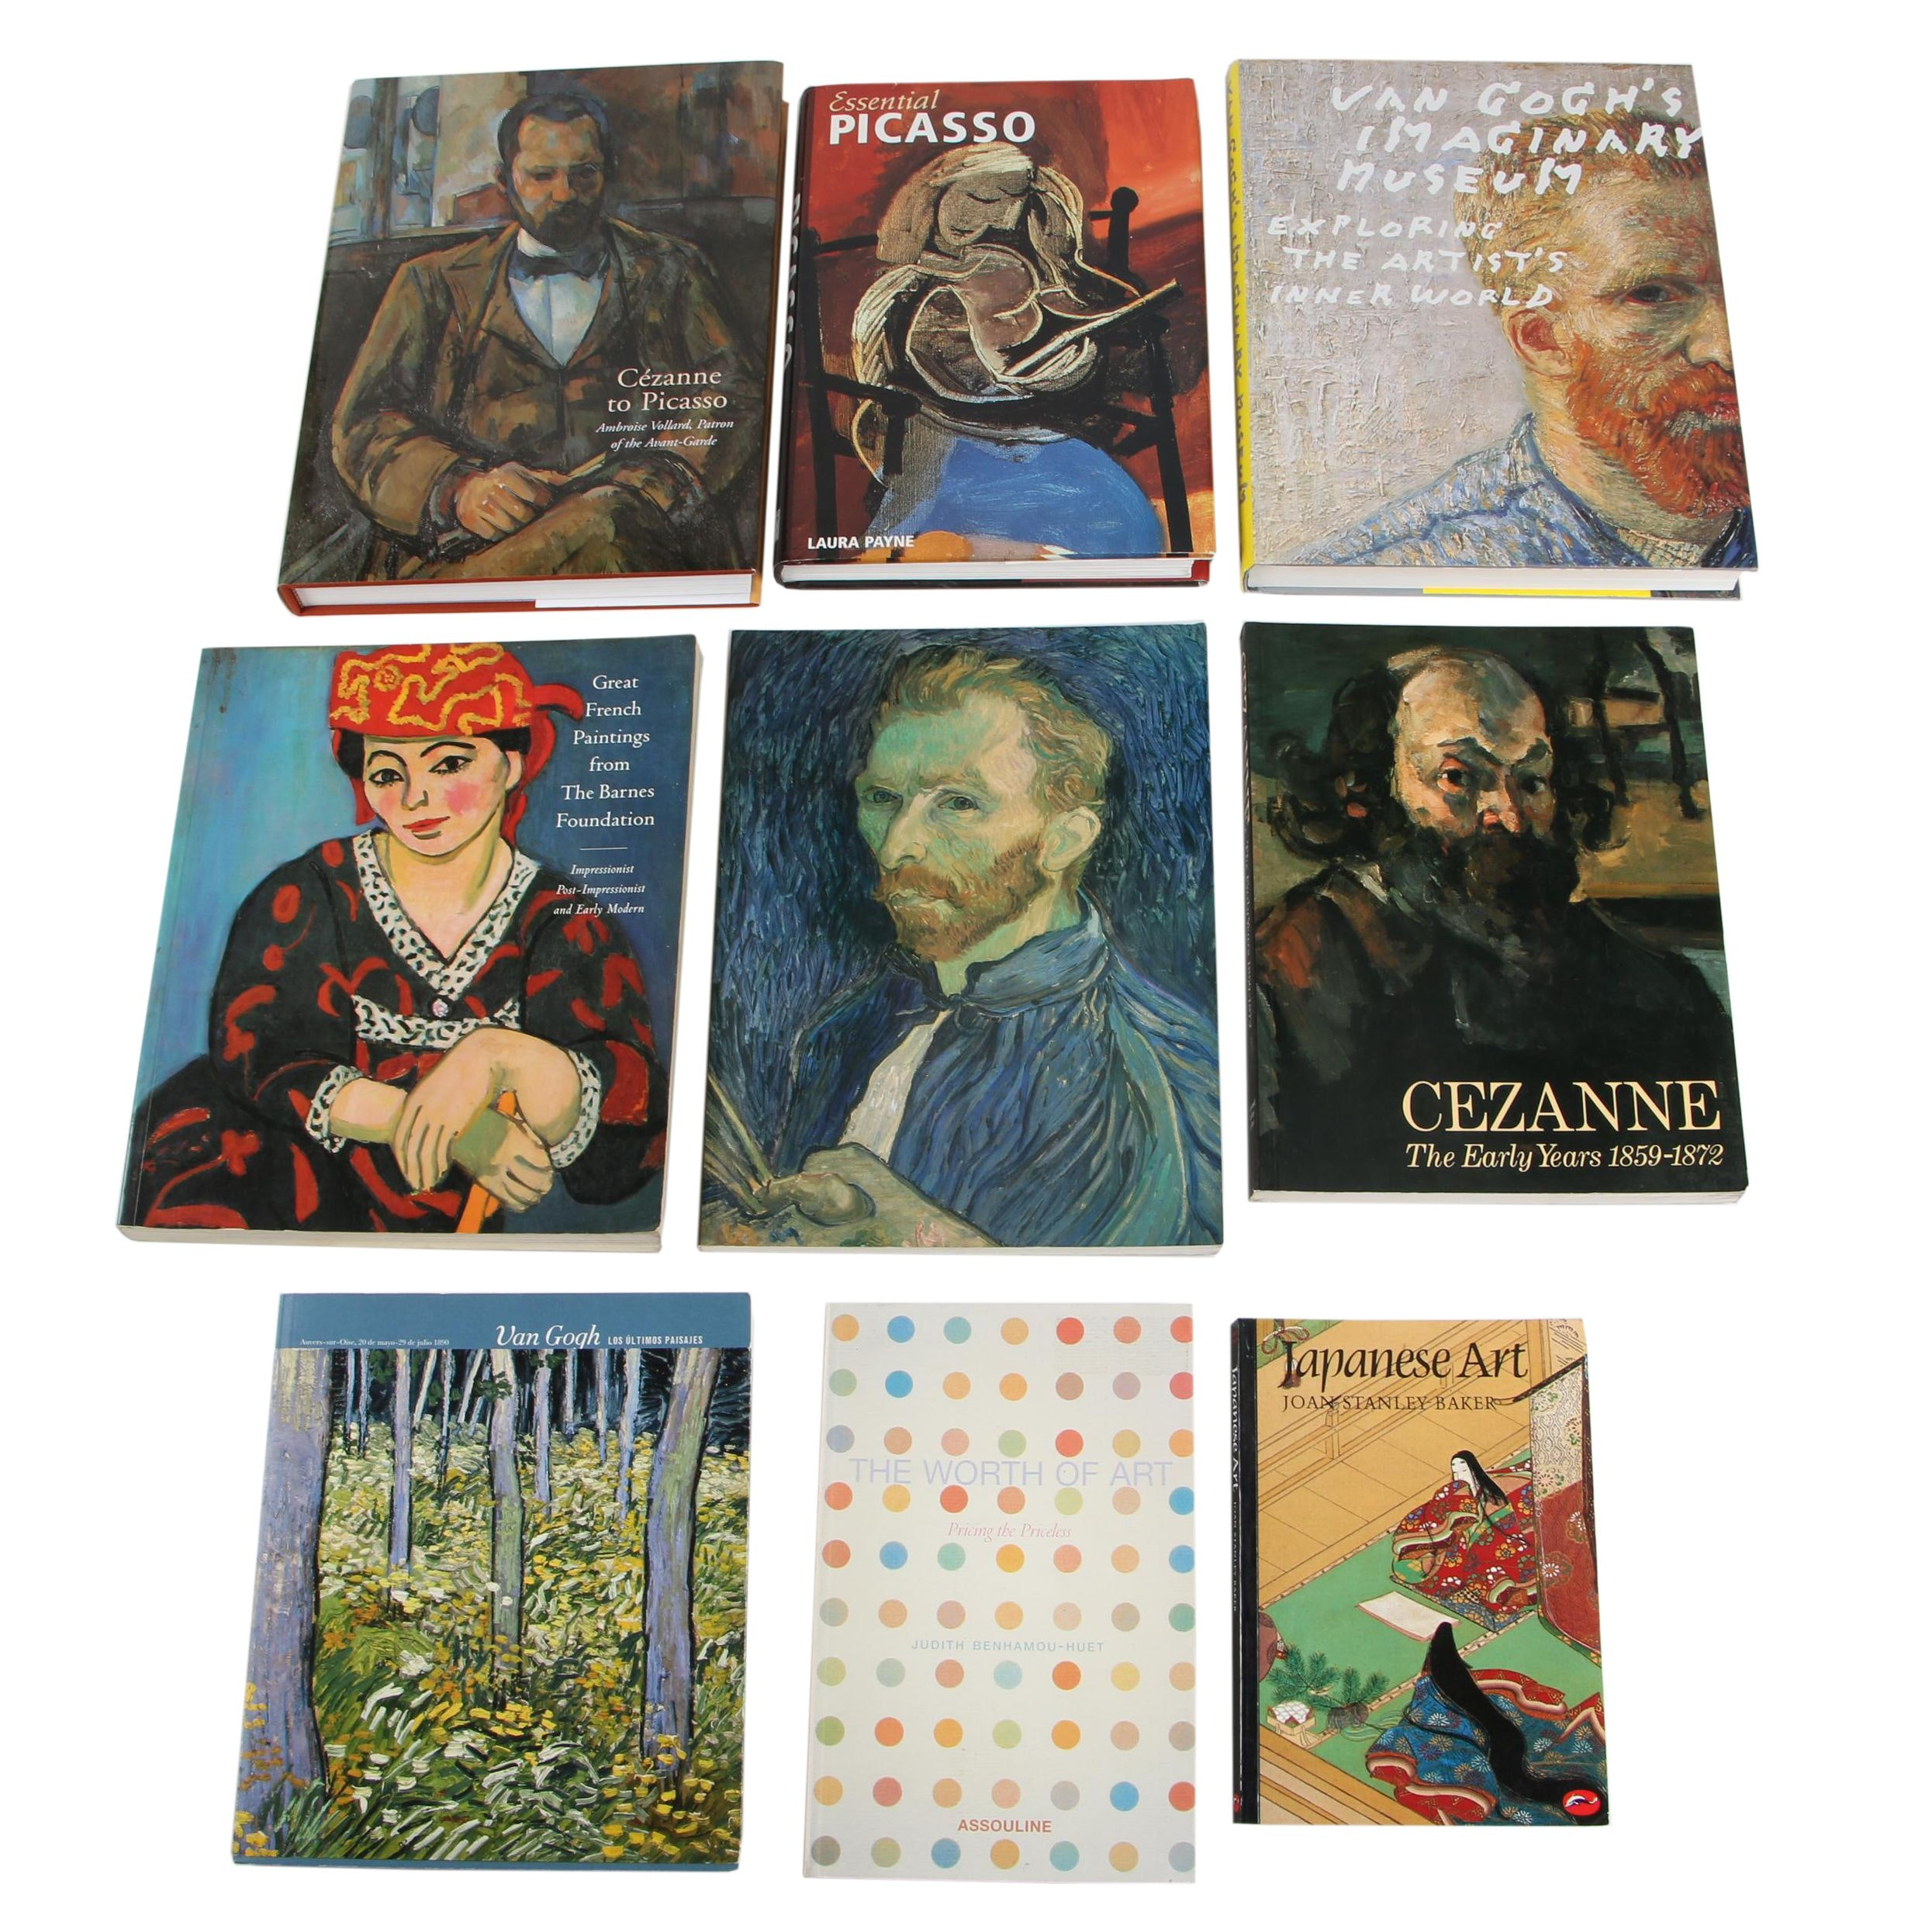 Art Books and Exhibition Catalogs Featuring Cézanne, Picasso, and Van Gogh